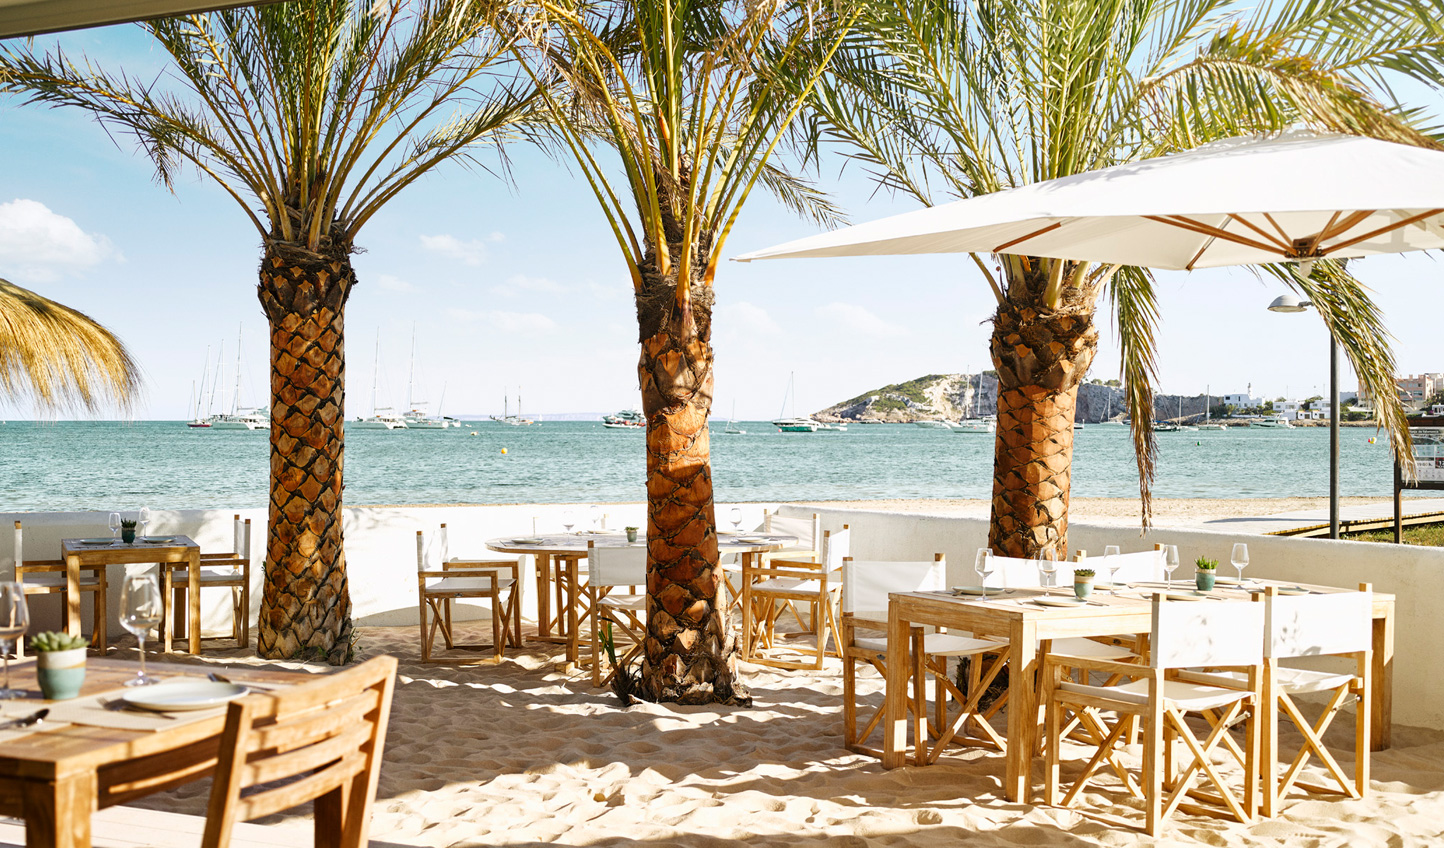 Enjoy lunch with your toes in the sand at Chambao